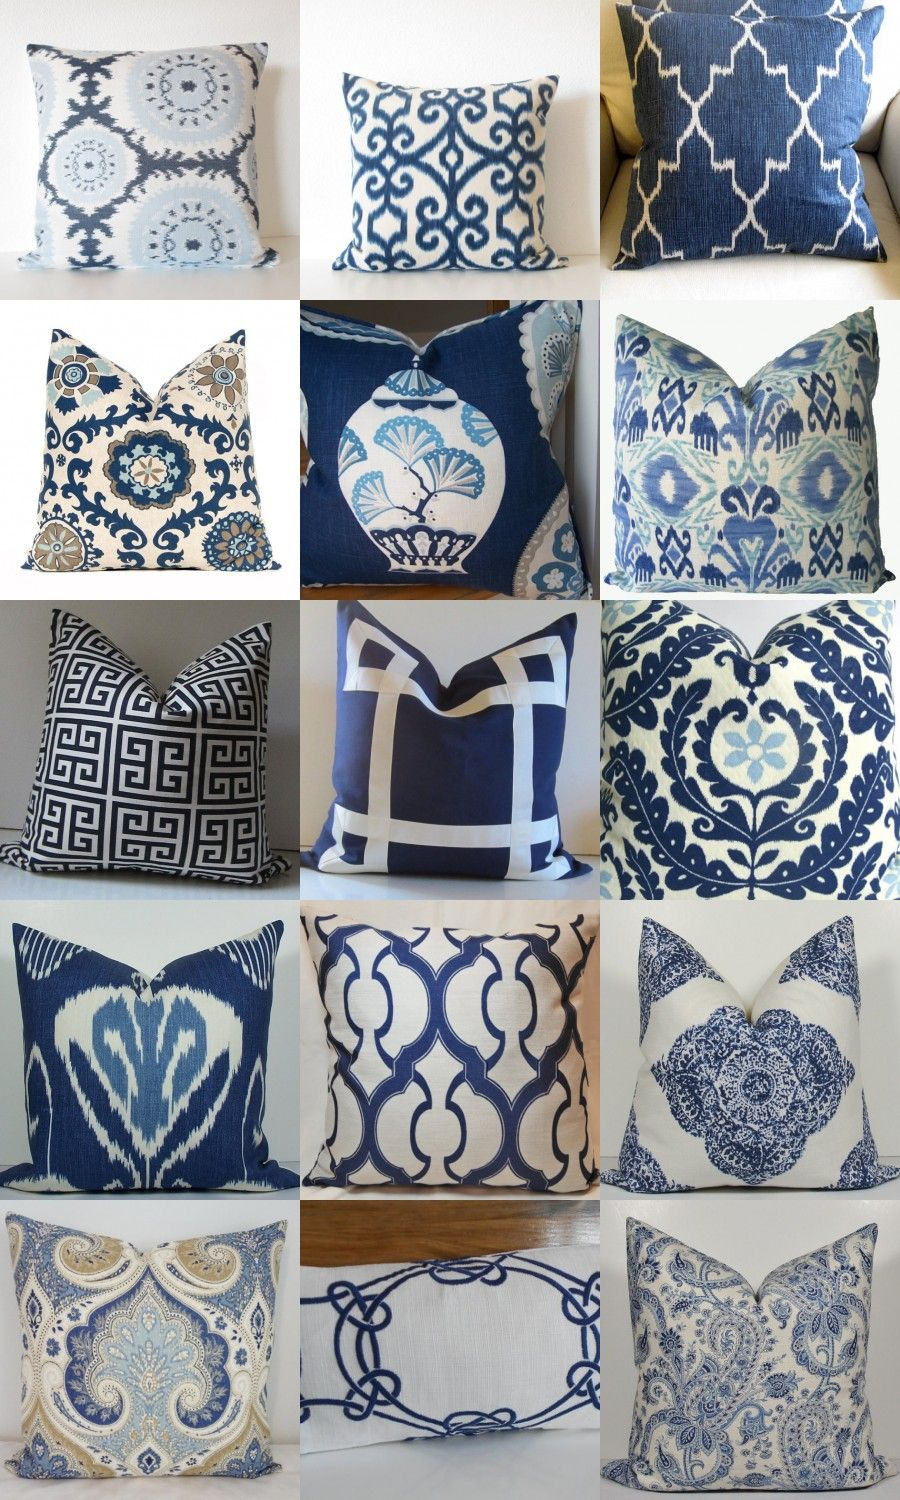 Blue Pillows on Pinterest : e471c12876f67c8aa6259507dc240423 from www.pinterest.com size 900 x 1500 jpeg 437kB